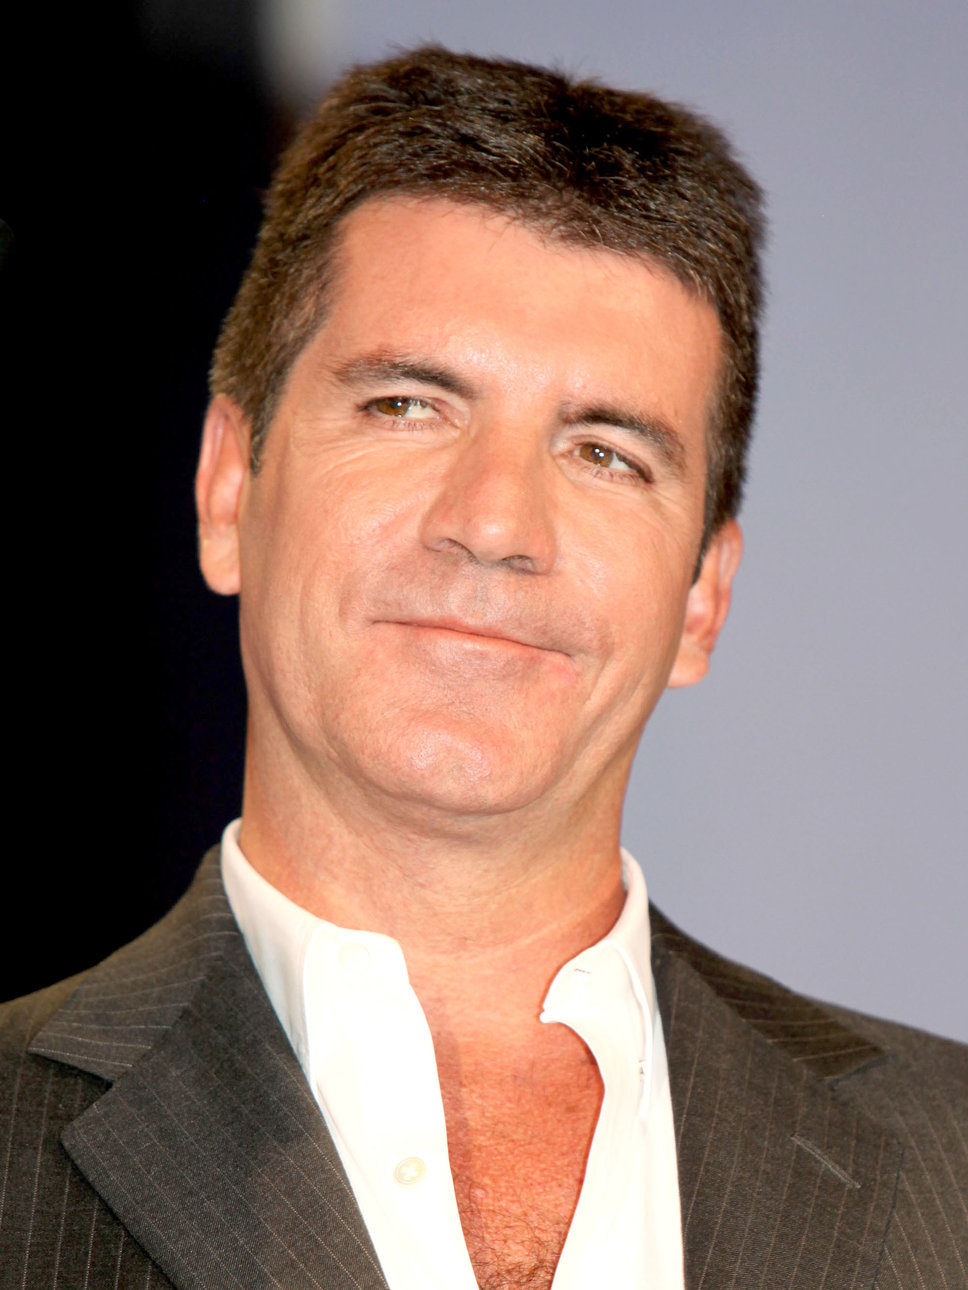 Simon Cowell answers last to avoid biases